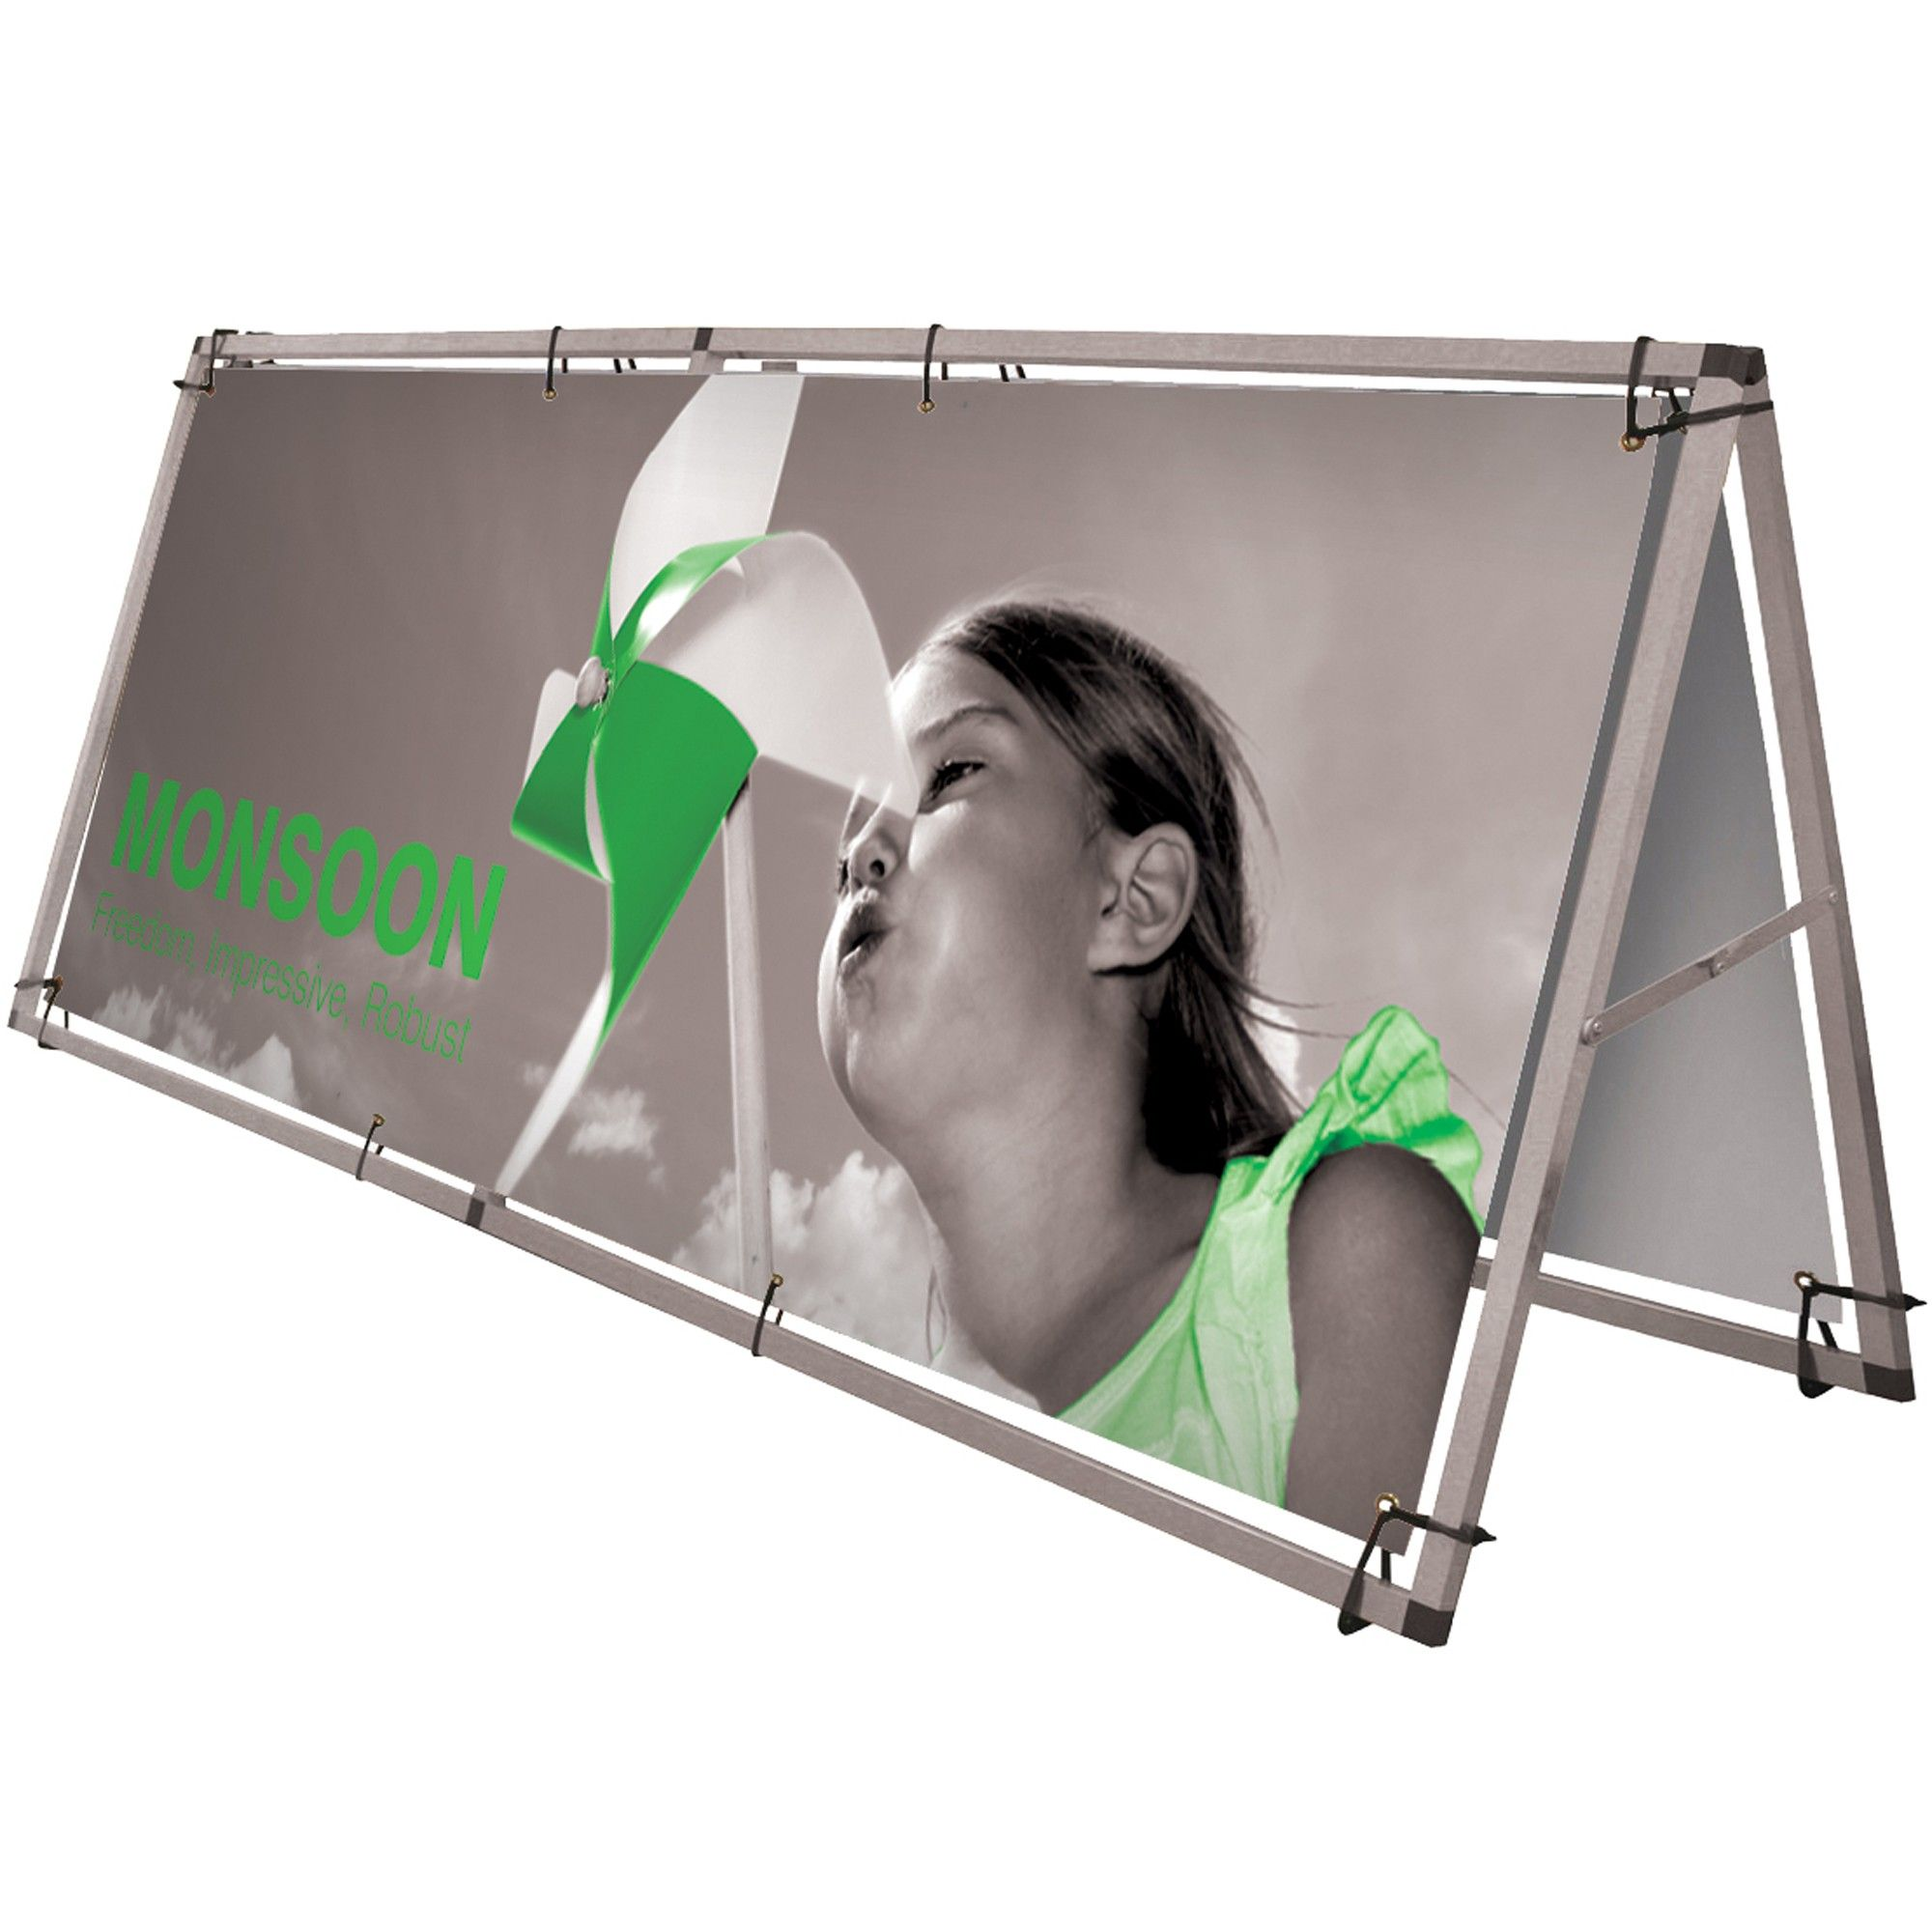 monsoon a frame outdoor banner stand a large format single or double sided banner